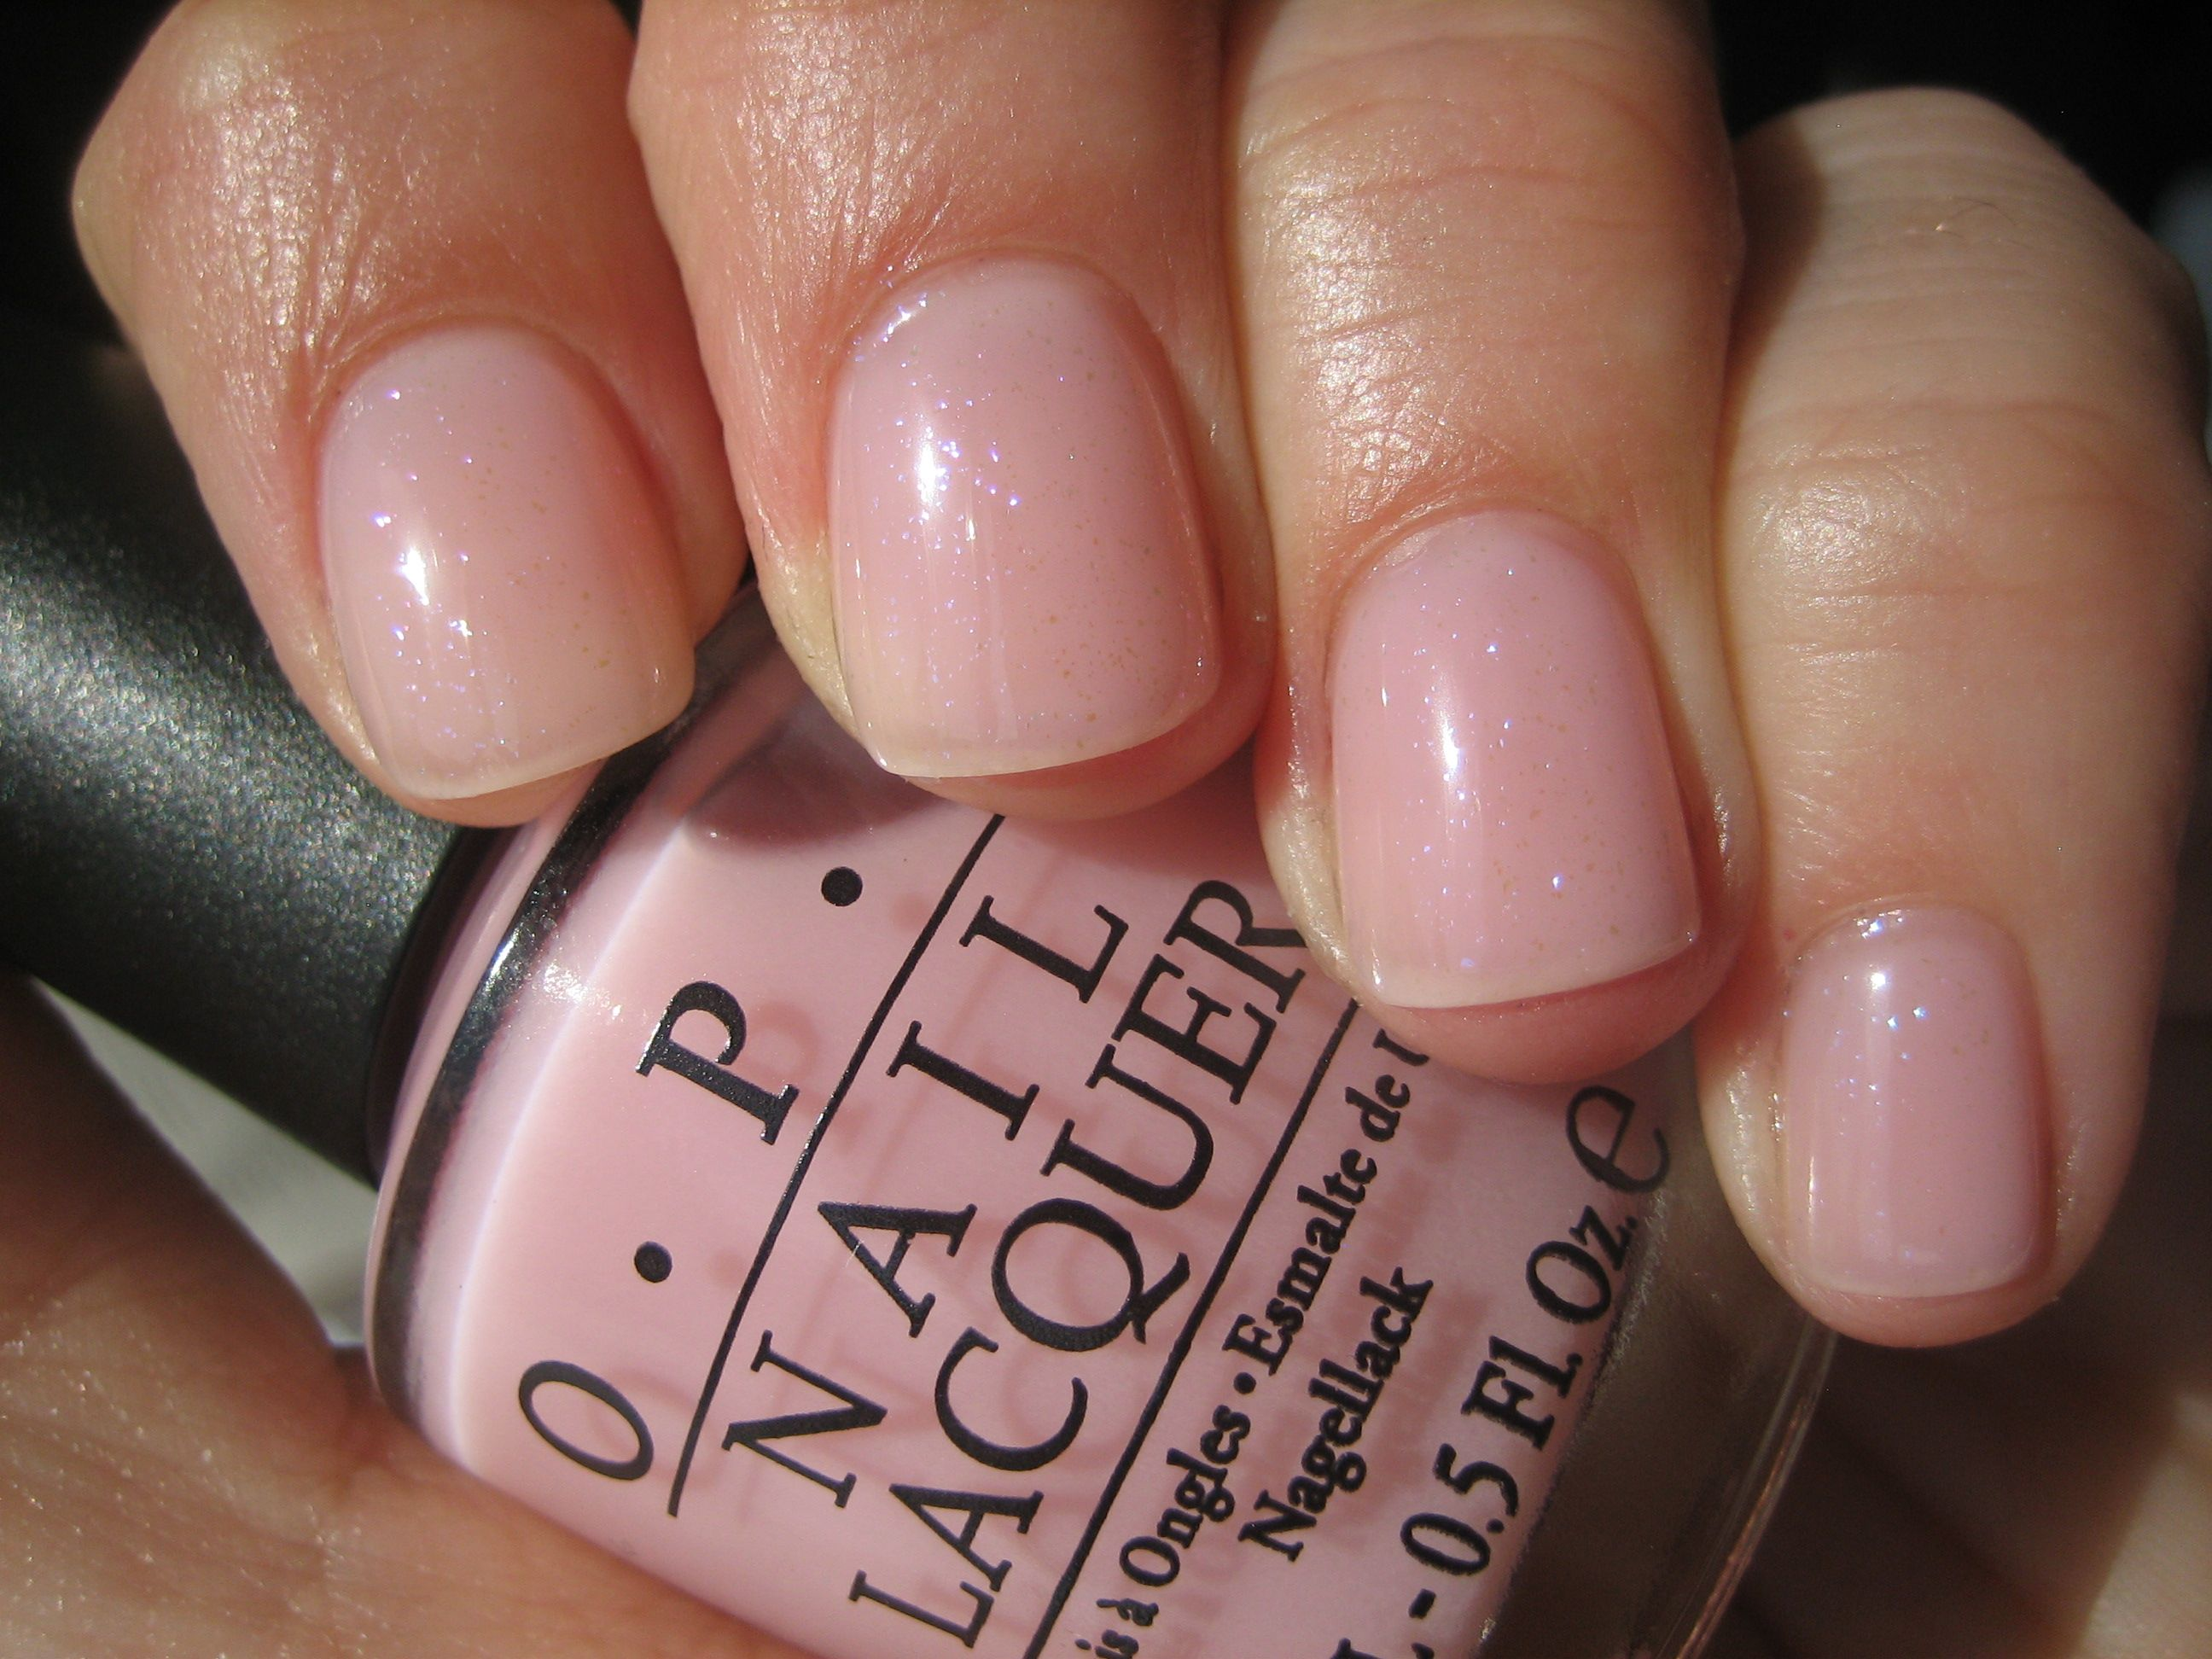 Opi Makes Men Blush A Nice Pale Pink A Great Nude